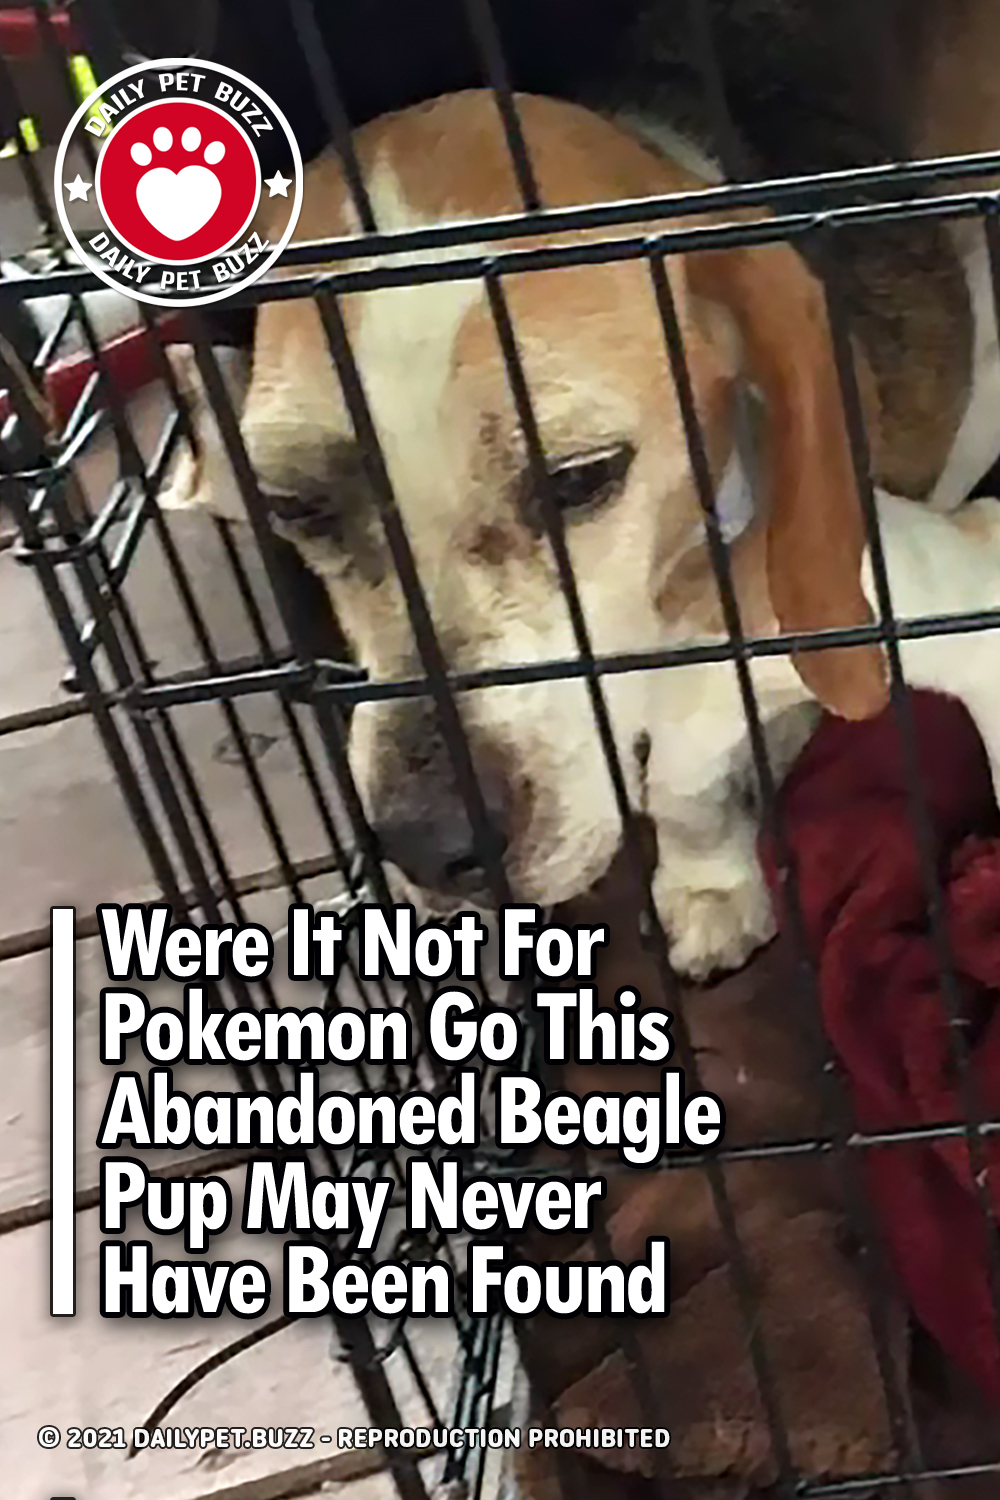 Were It Not For Pokemon Go This Abandoned Beagle Pup May Never Have Been Found